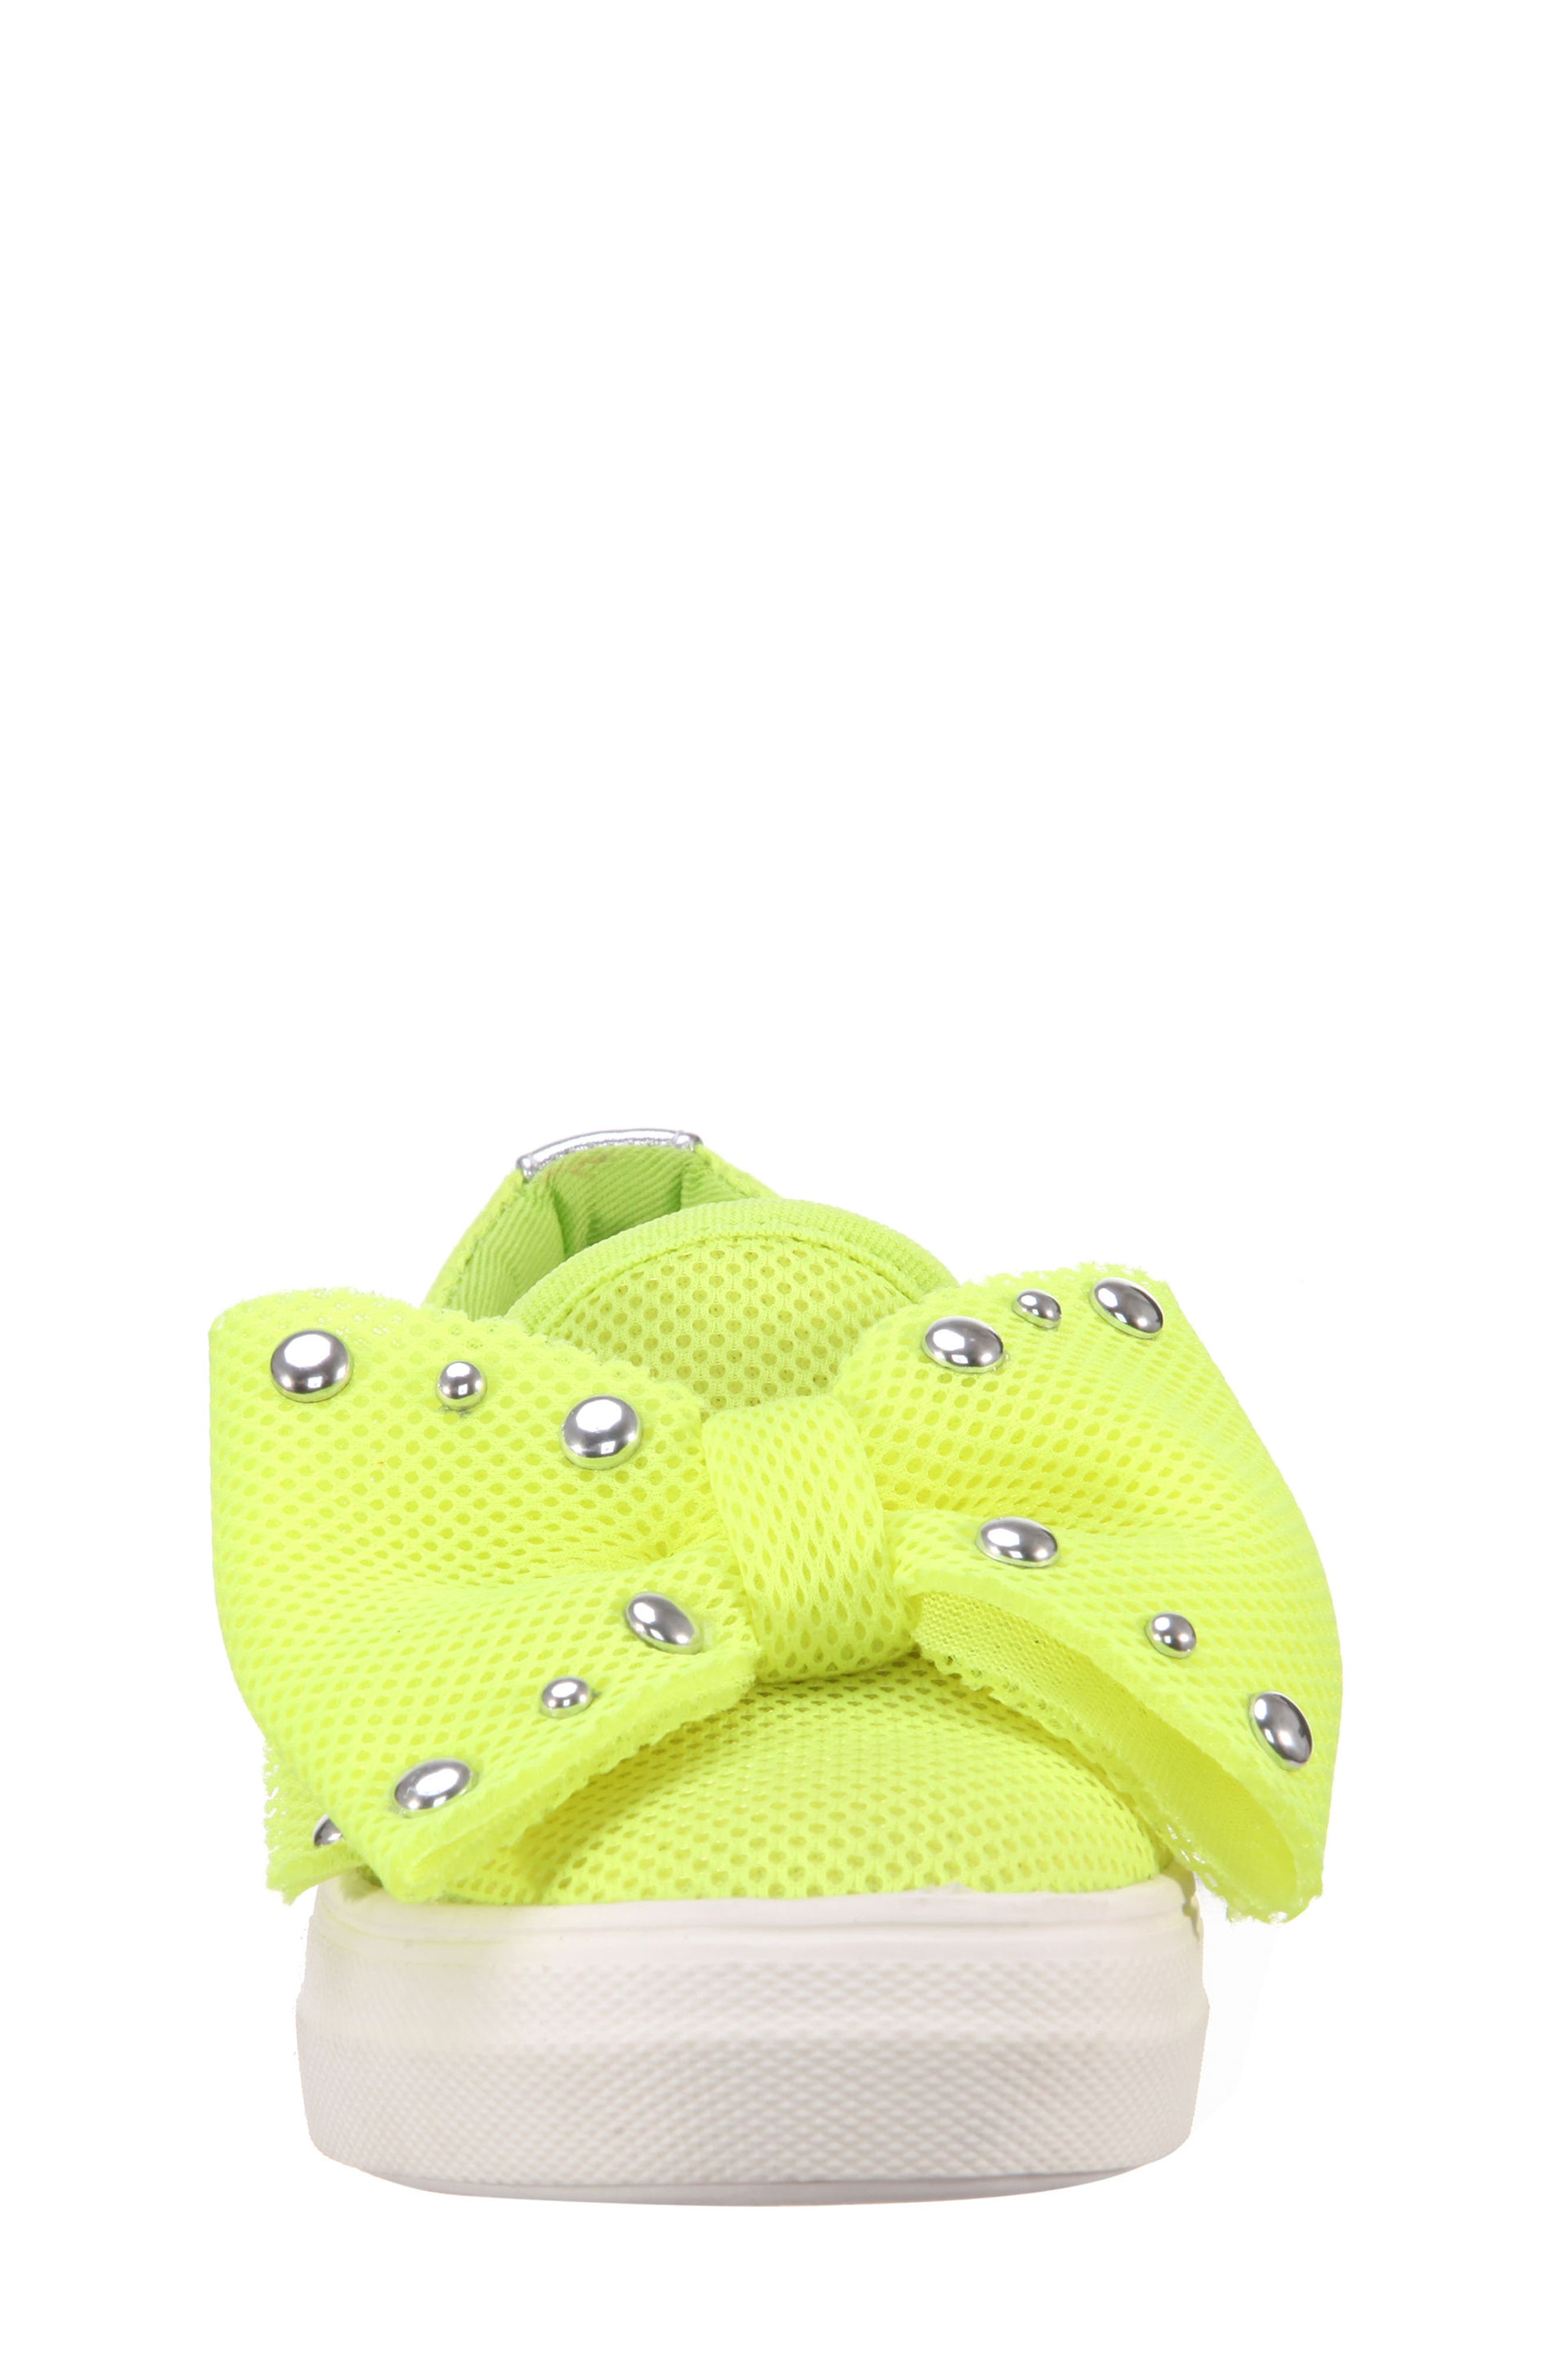 Mary Bow Slip-On Sneaker,                             Alternate thumbnail 4, color,                             Neon Yellow Mesh